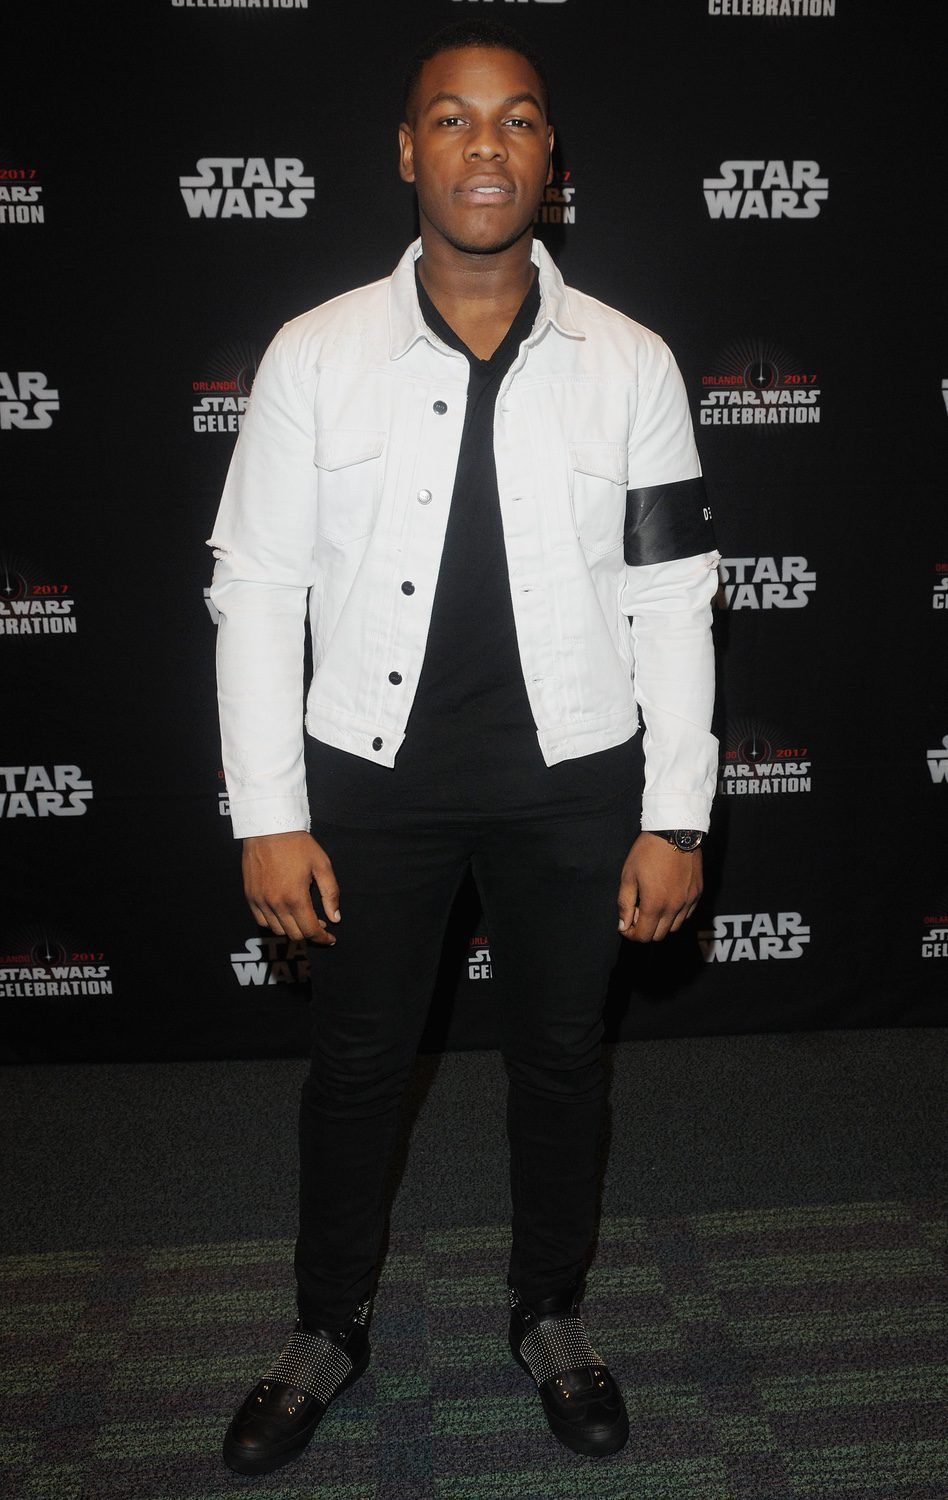 John Boyega goes to Star Wars Celebration, and poses before the panel of 'The Last Jedi'